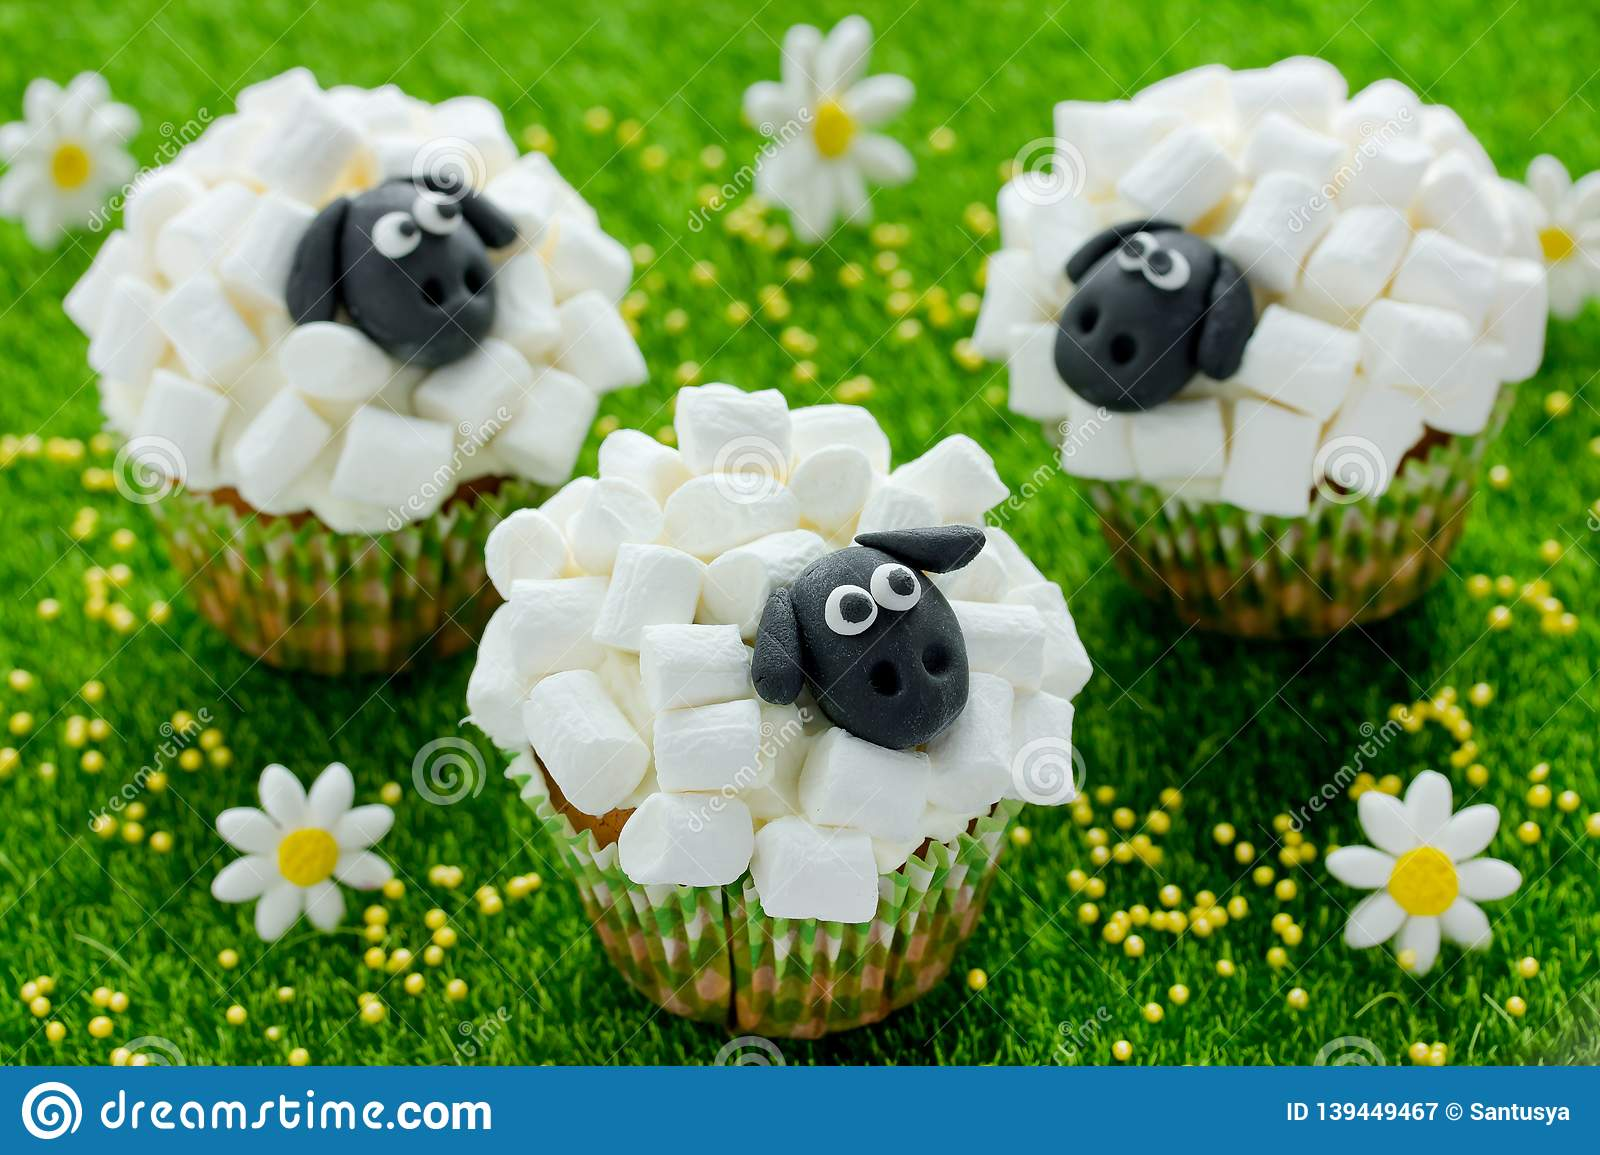 Easter Sheep Cupcakes On Green Grass Background Homemade Cakes Shaped Funny Sheeps With Marshmallow